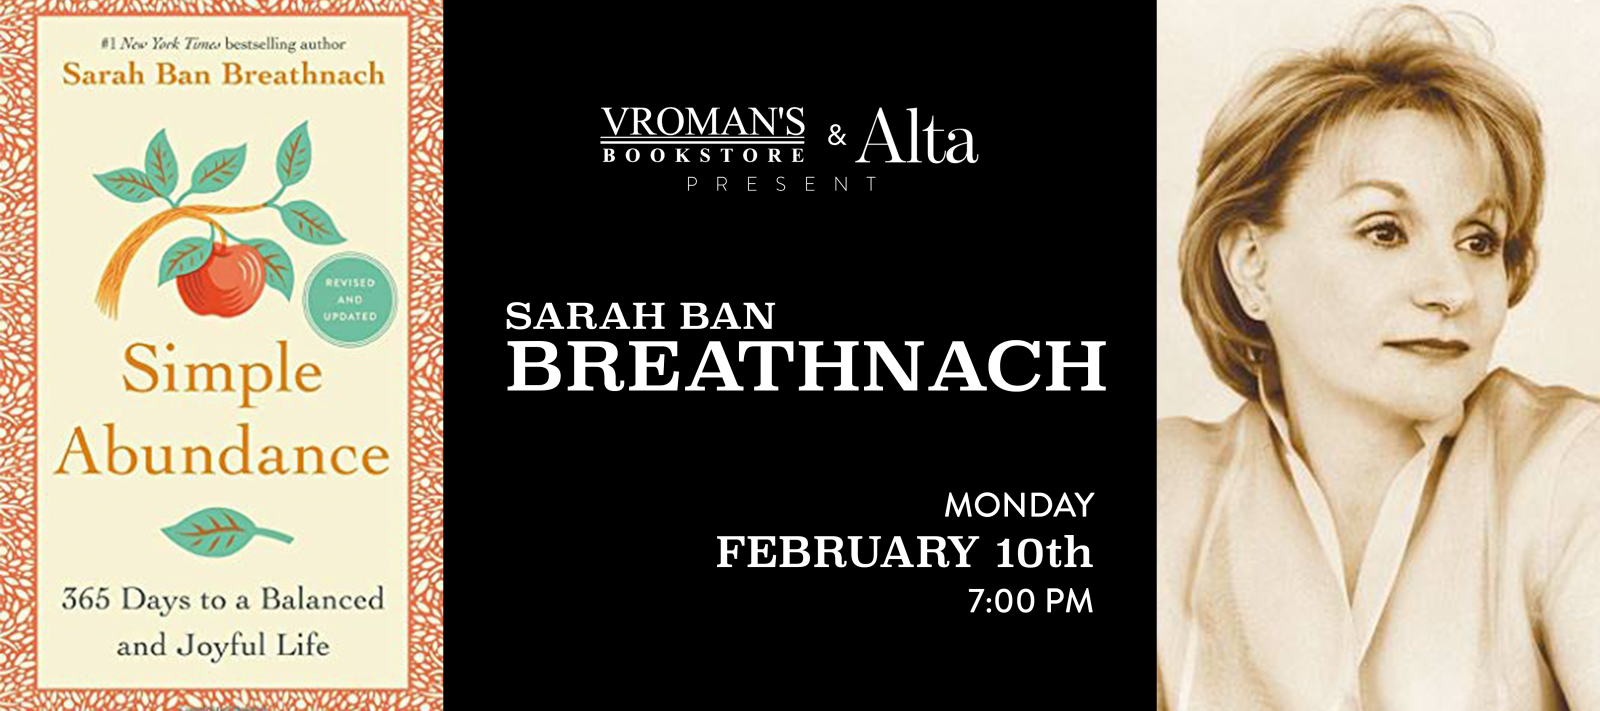 Sarah Ban Breathnach book signing on Monday, February 10, at 7pm